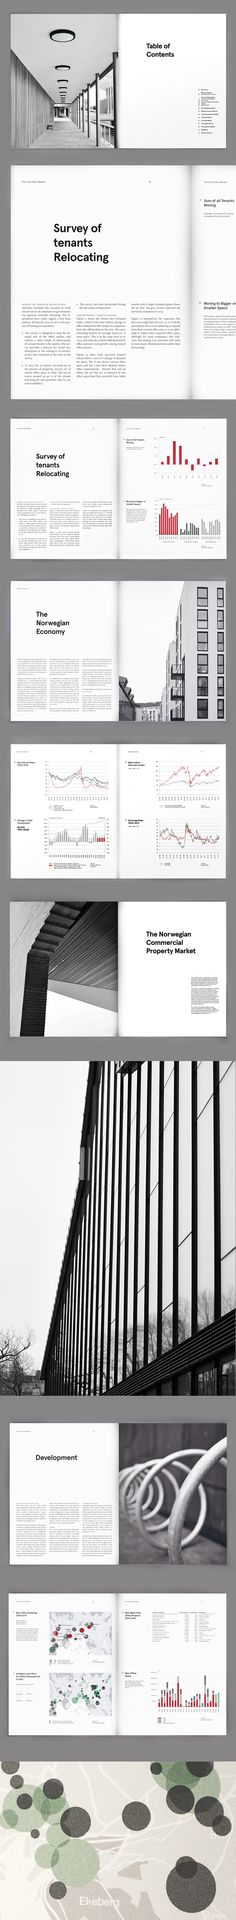 Akershus Eiendom Annual Report Layout Design | Publication and Print Design